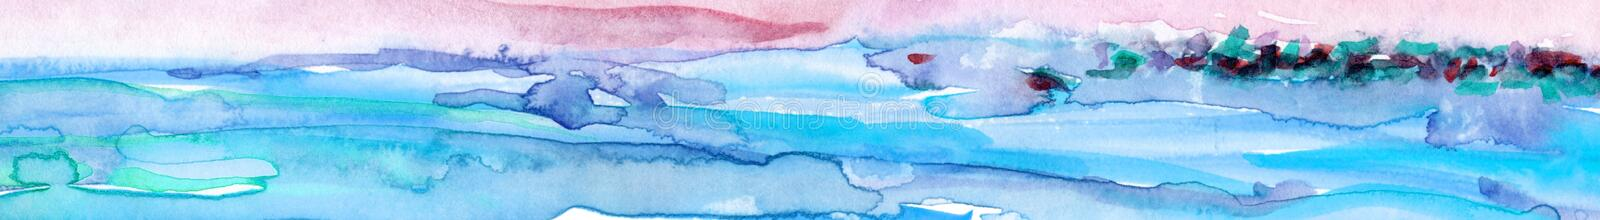 Hand Drawn Abstract Watercolor Landscape. NSea Landscape. Hand-drawn watercolor illustration on textured paper.n royalty free stock image